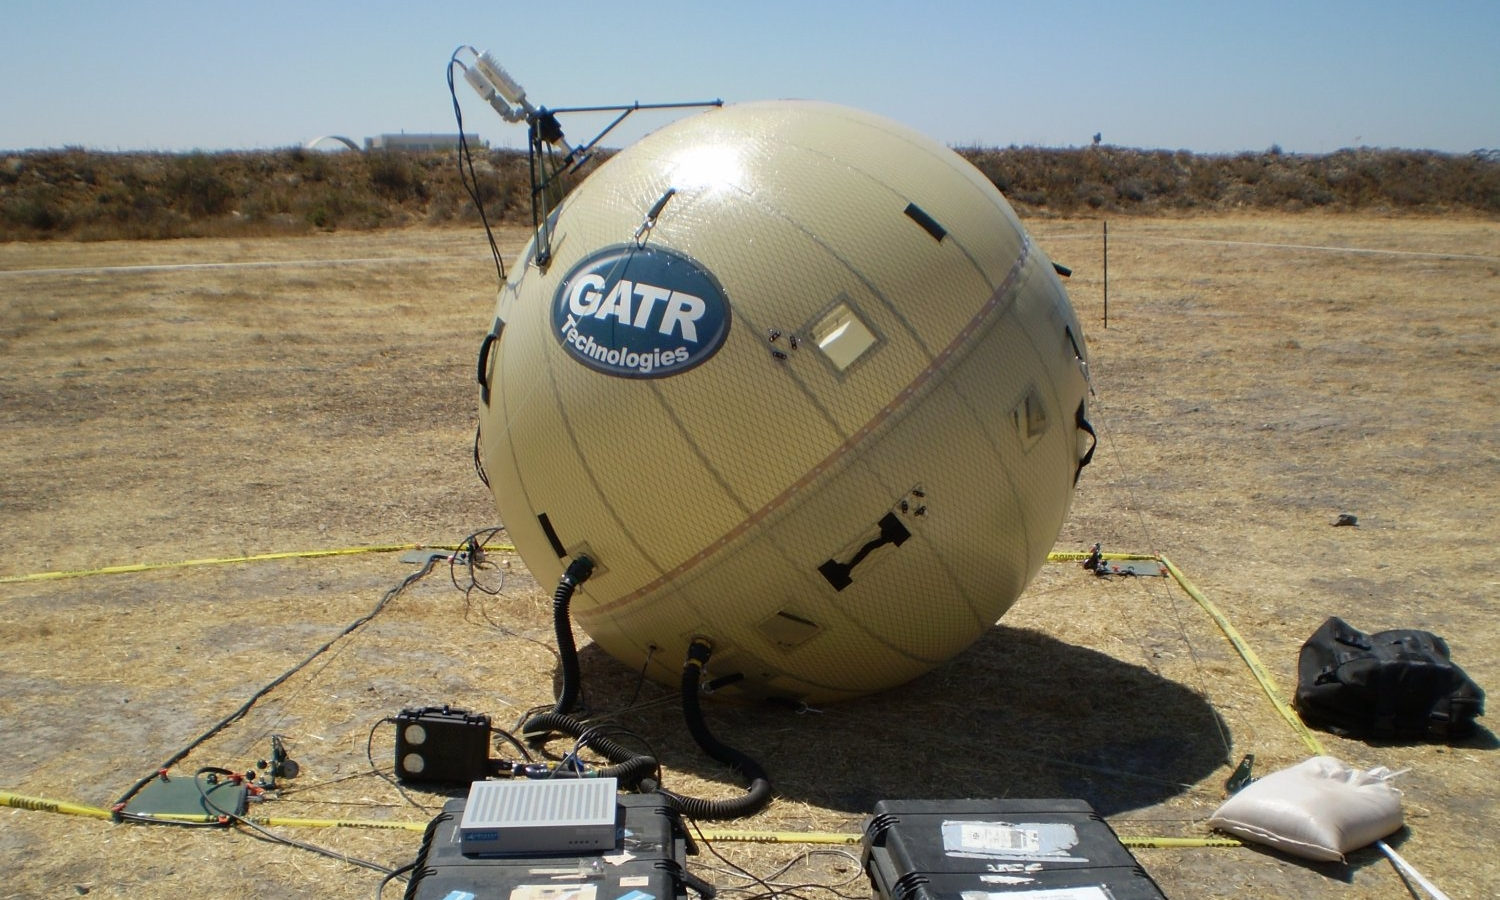 Inflatable Satellite Dishes - We are the proud supplier of the balloon component for GATR Technologies portable SATCOM